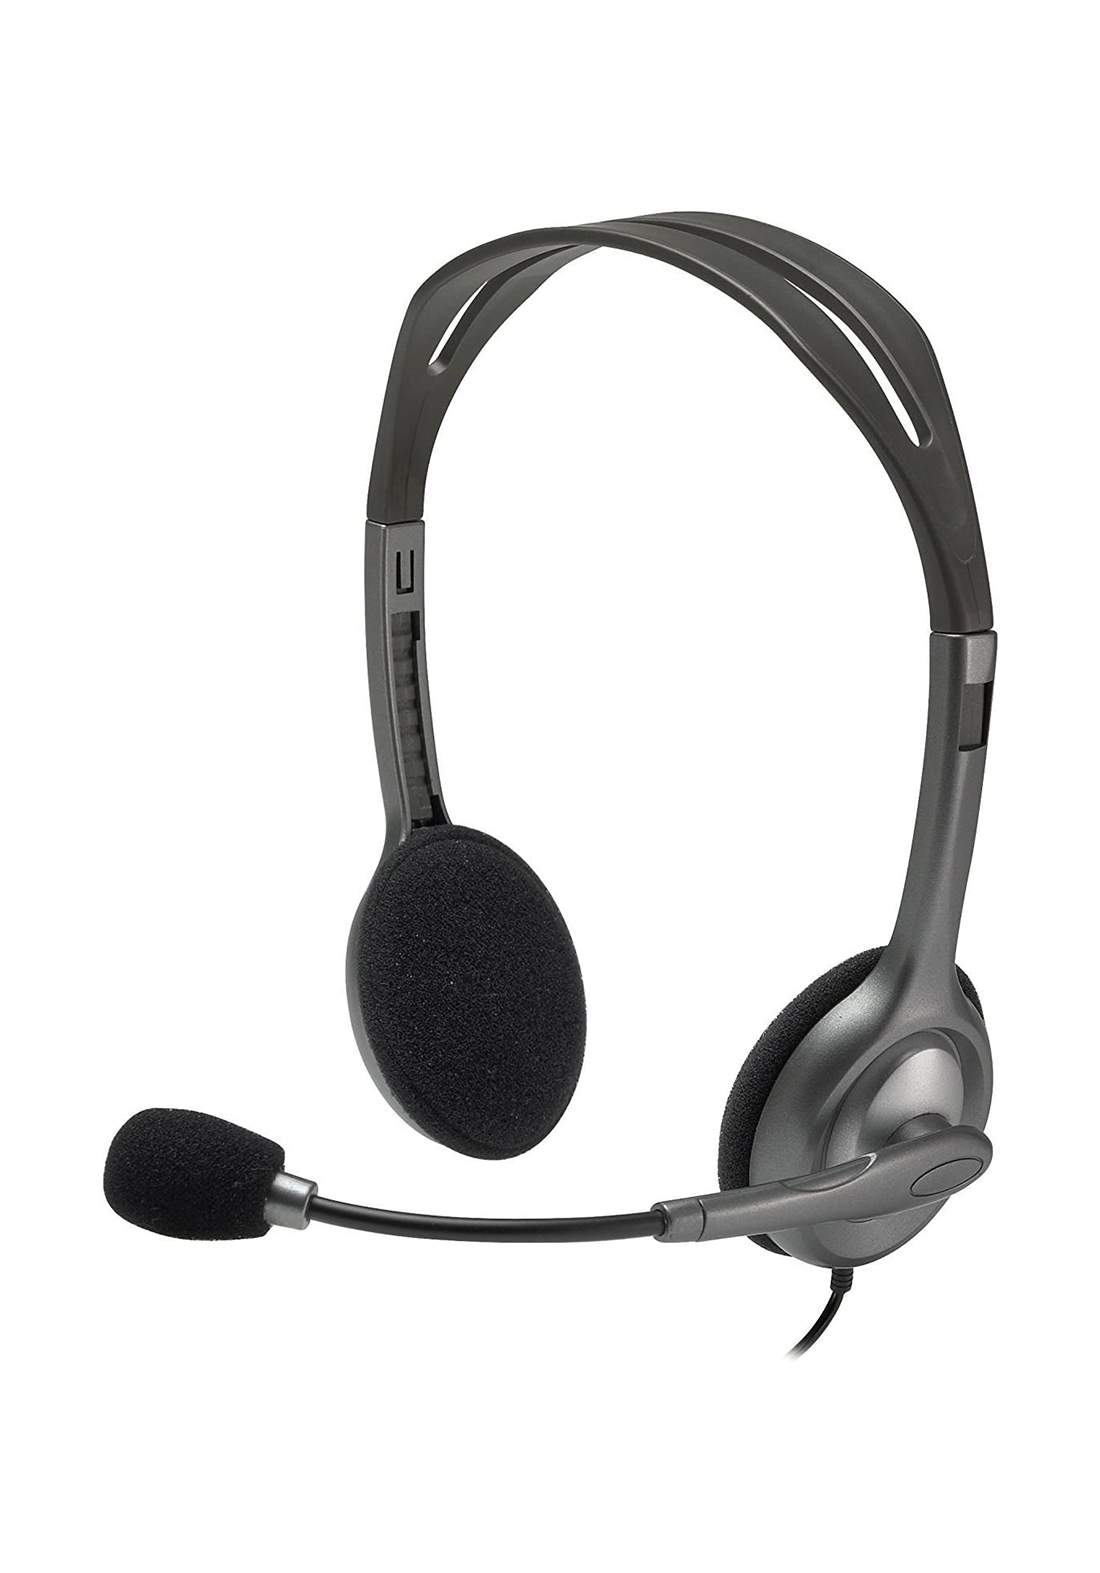 Logitech H111 Stereo Wired Headset - Gray سماعة